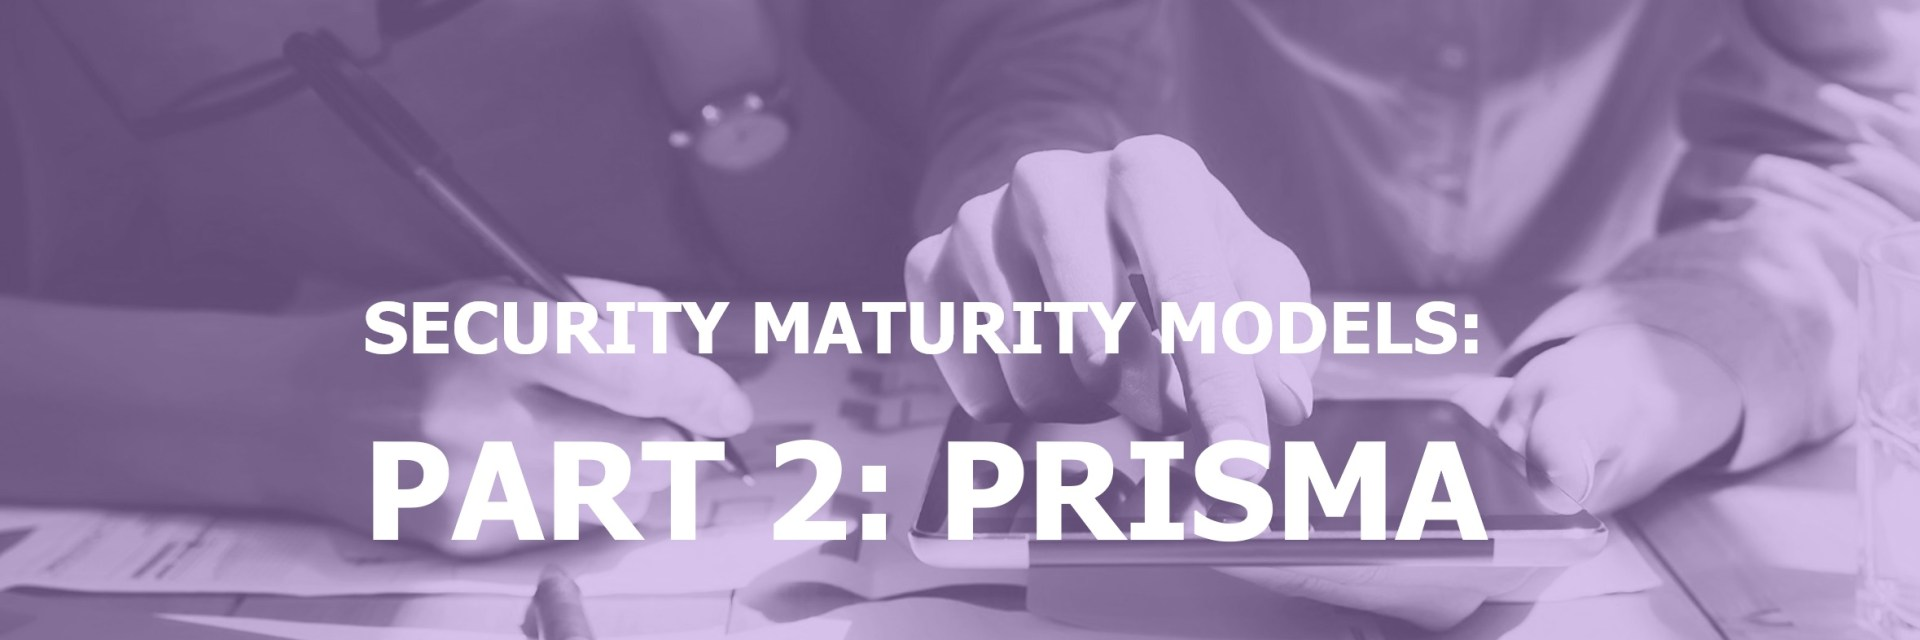 Security Maturity Models Part 2 What is PRISMA